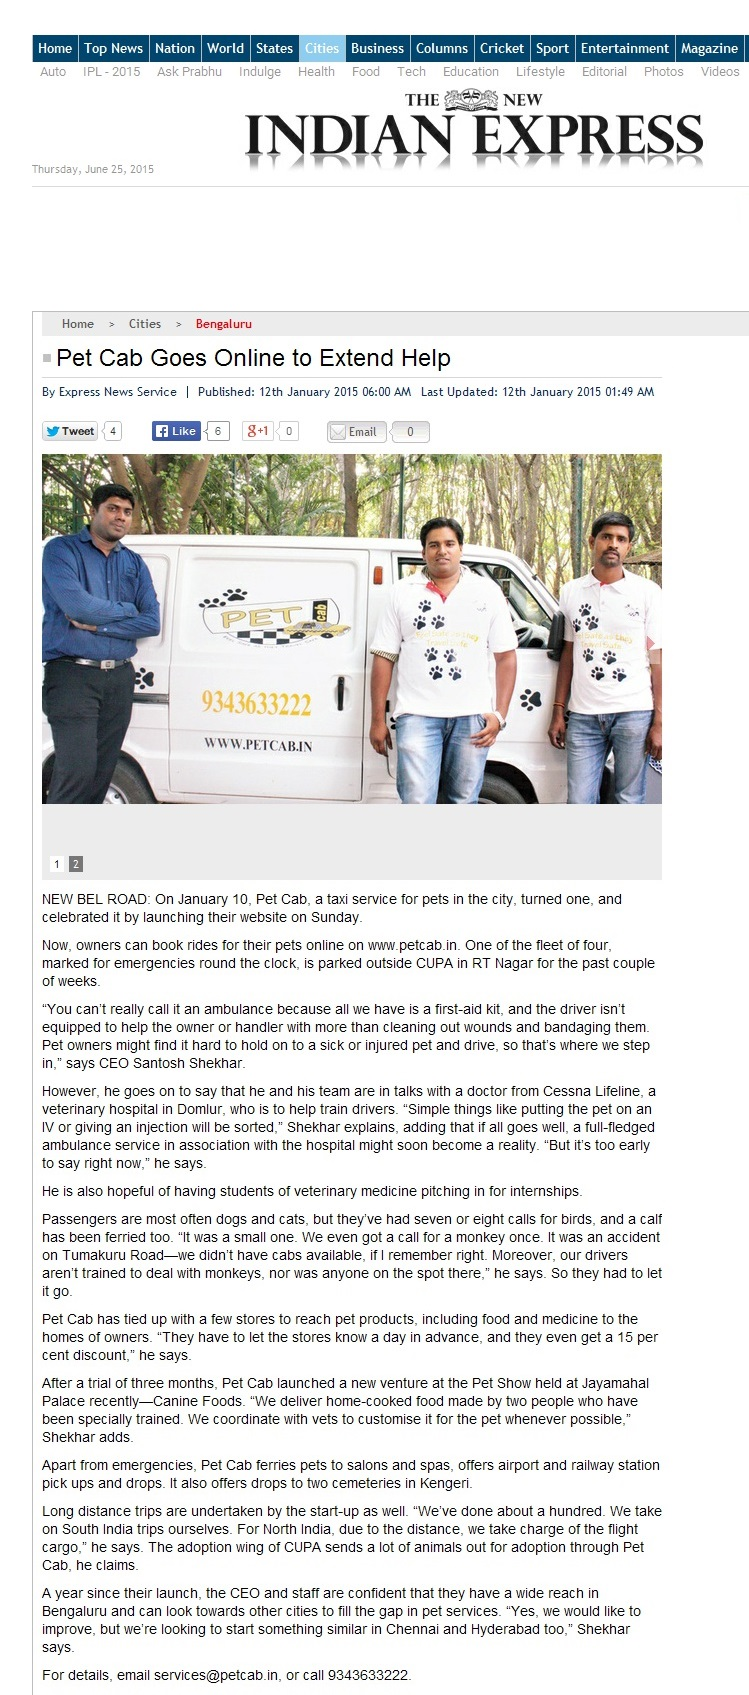 Petcab In 'The New Indian Express'